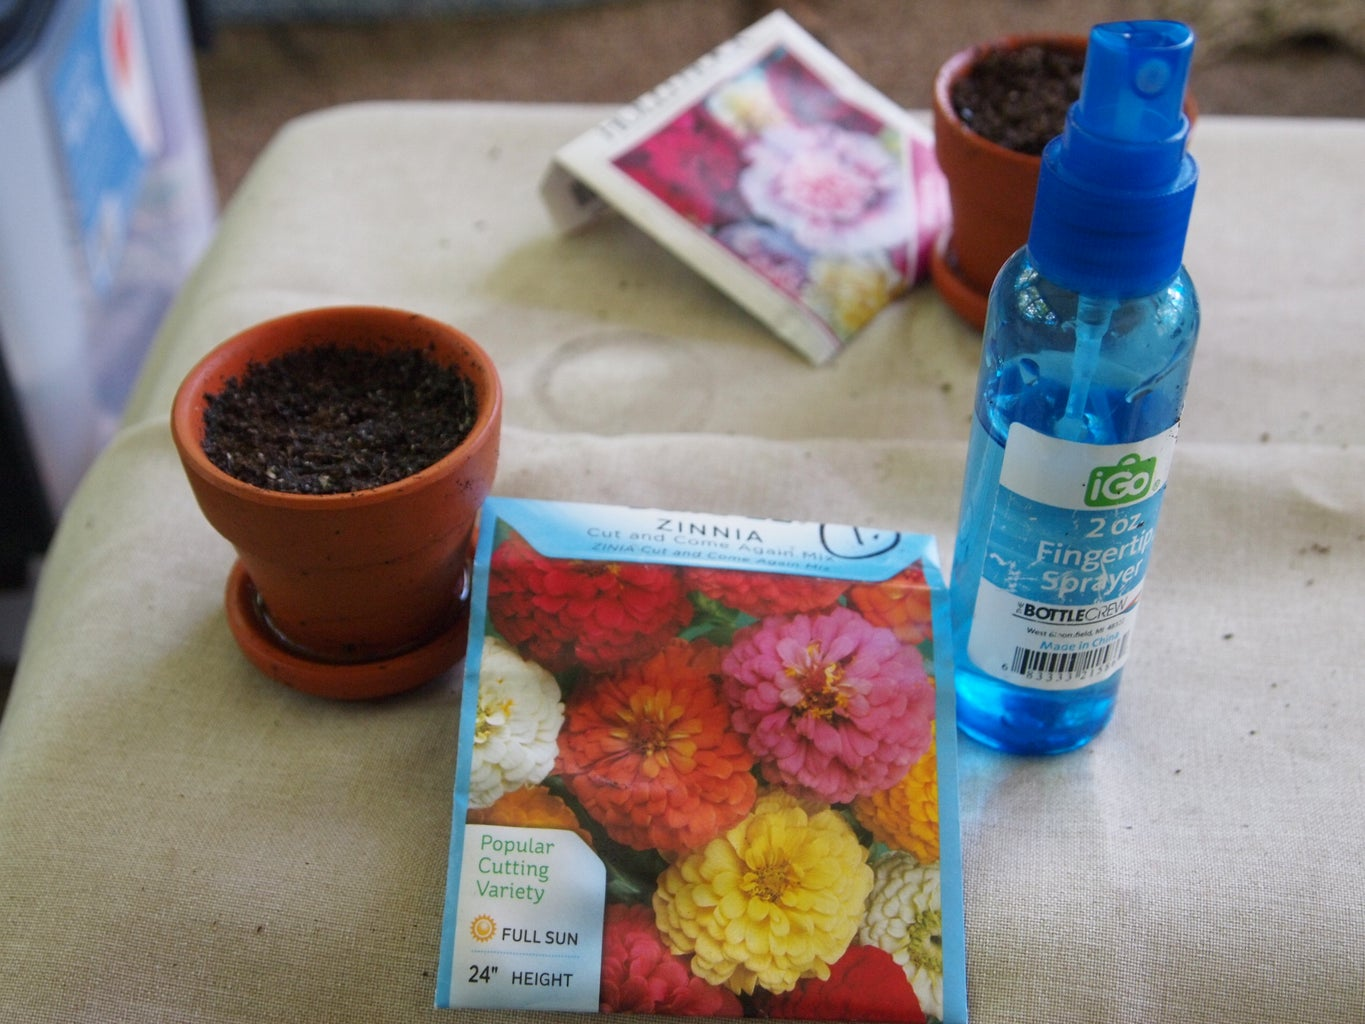 Planting the Germinated Seeds